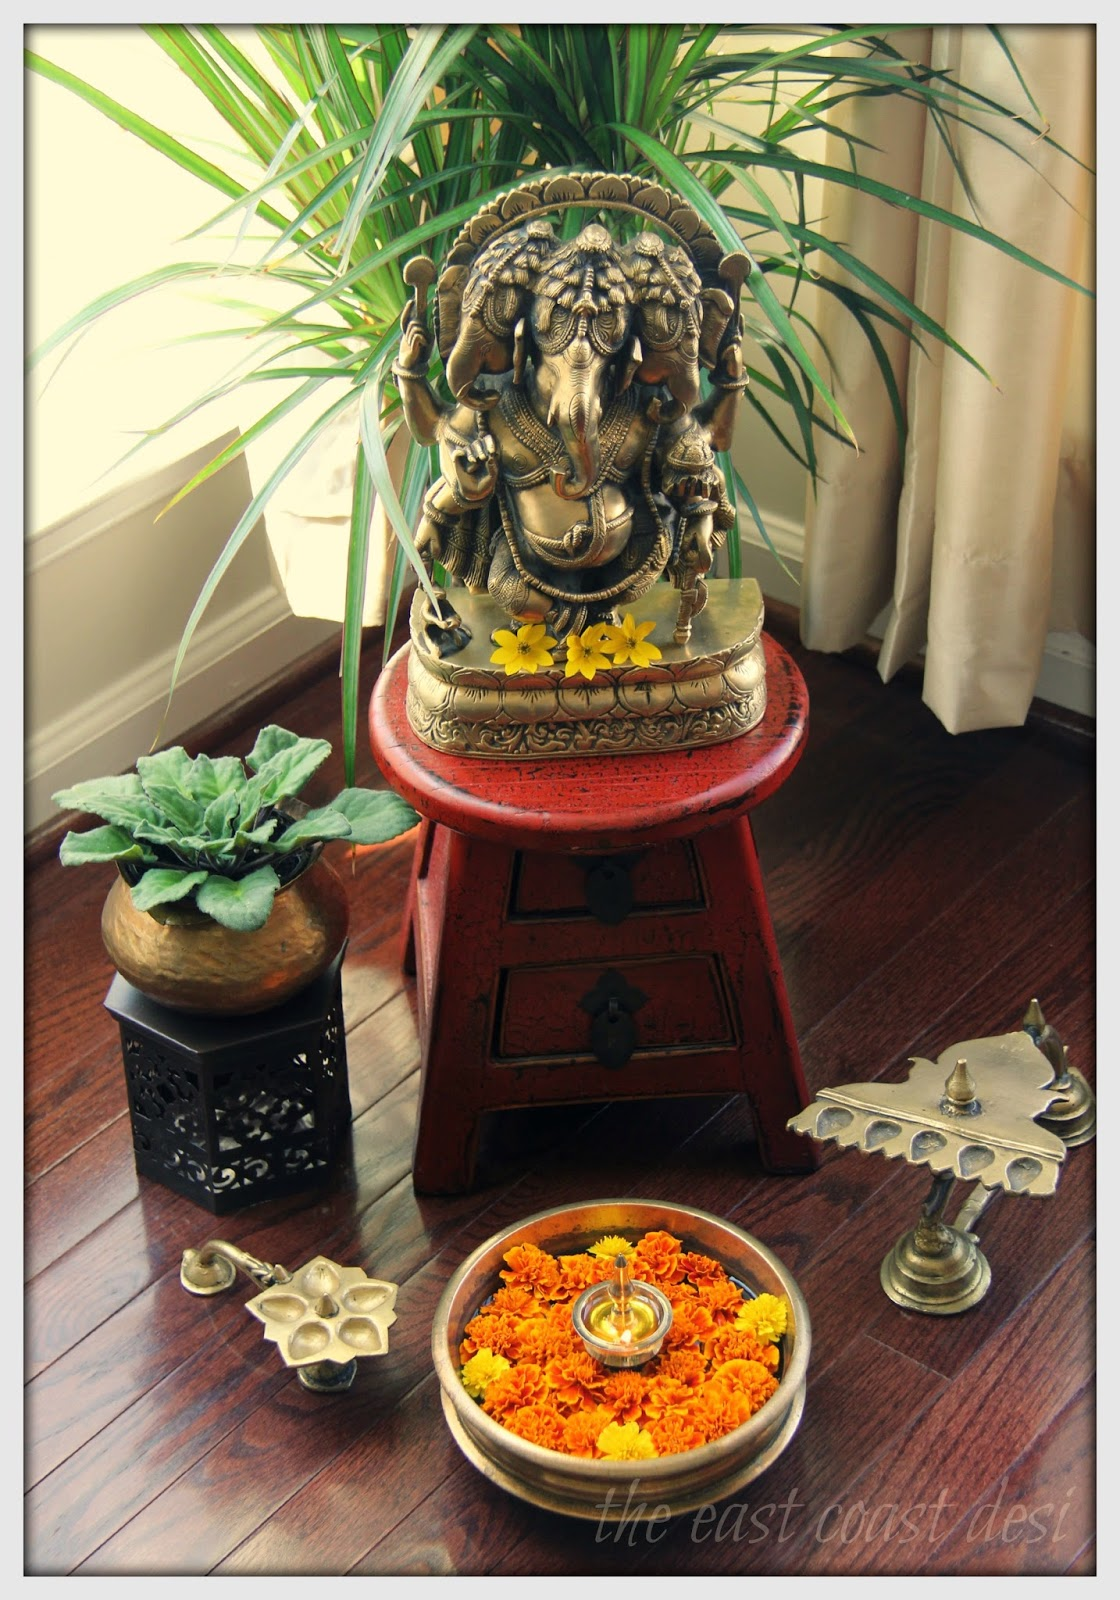 The east coast desi just in time for some ganesha for Home decorations india